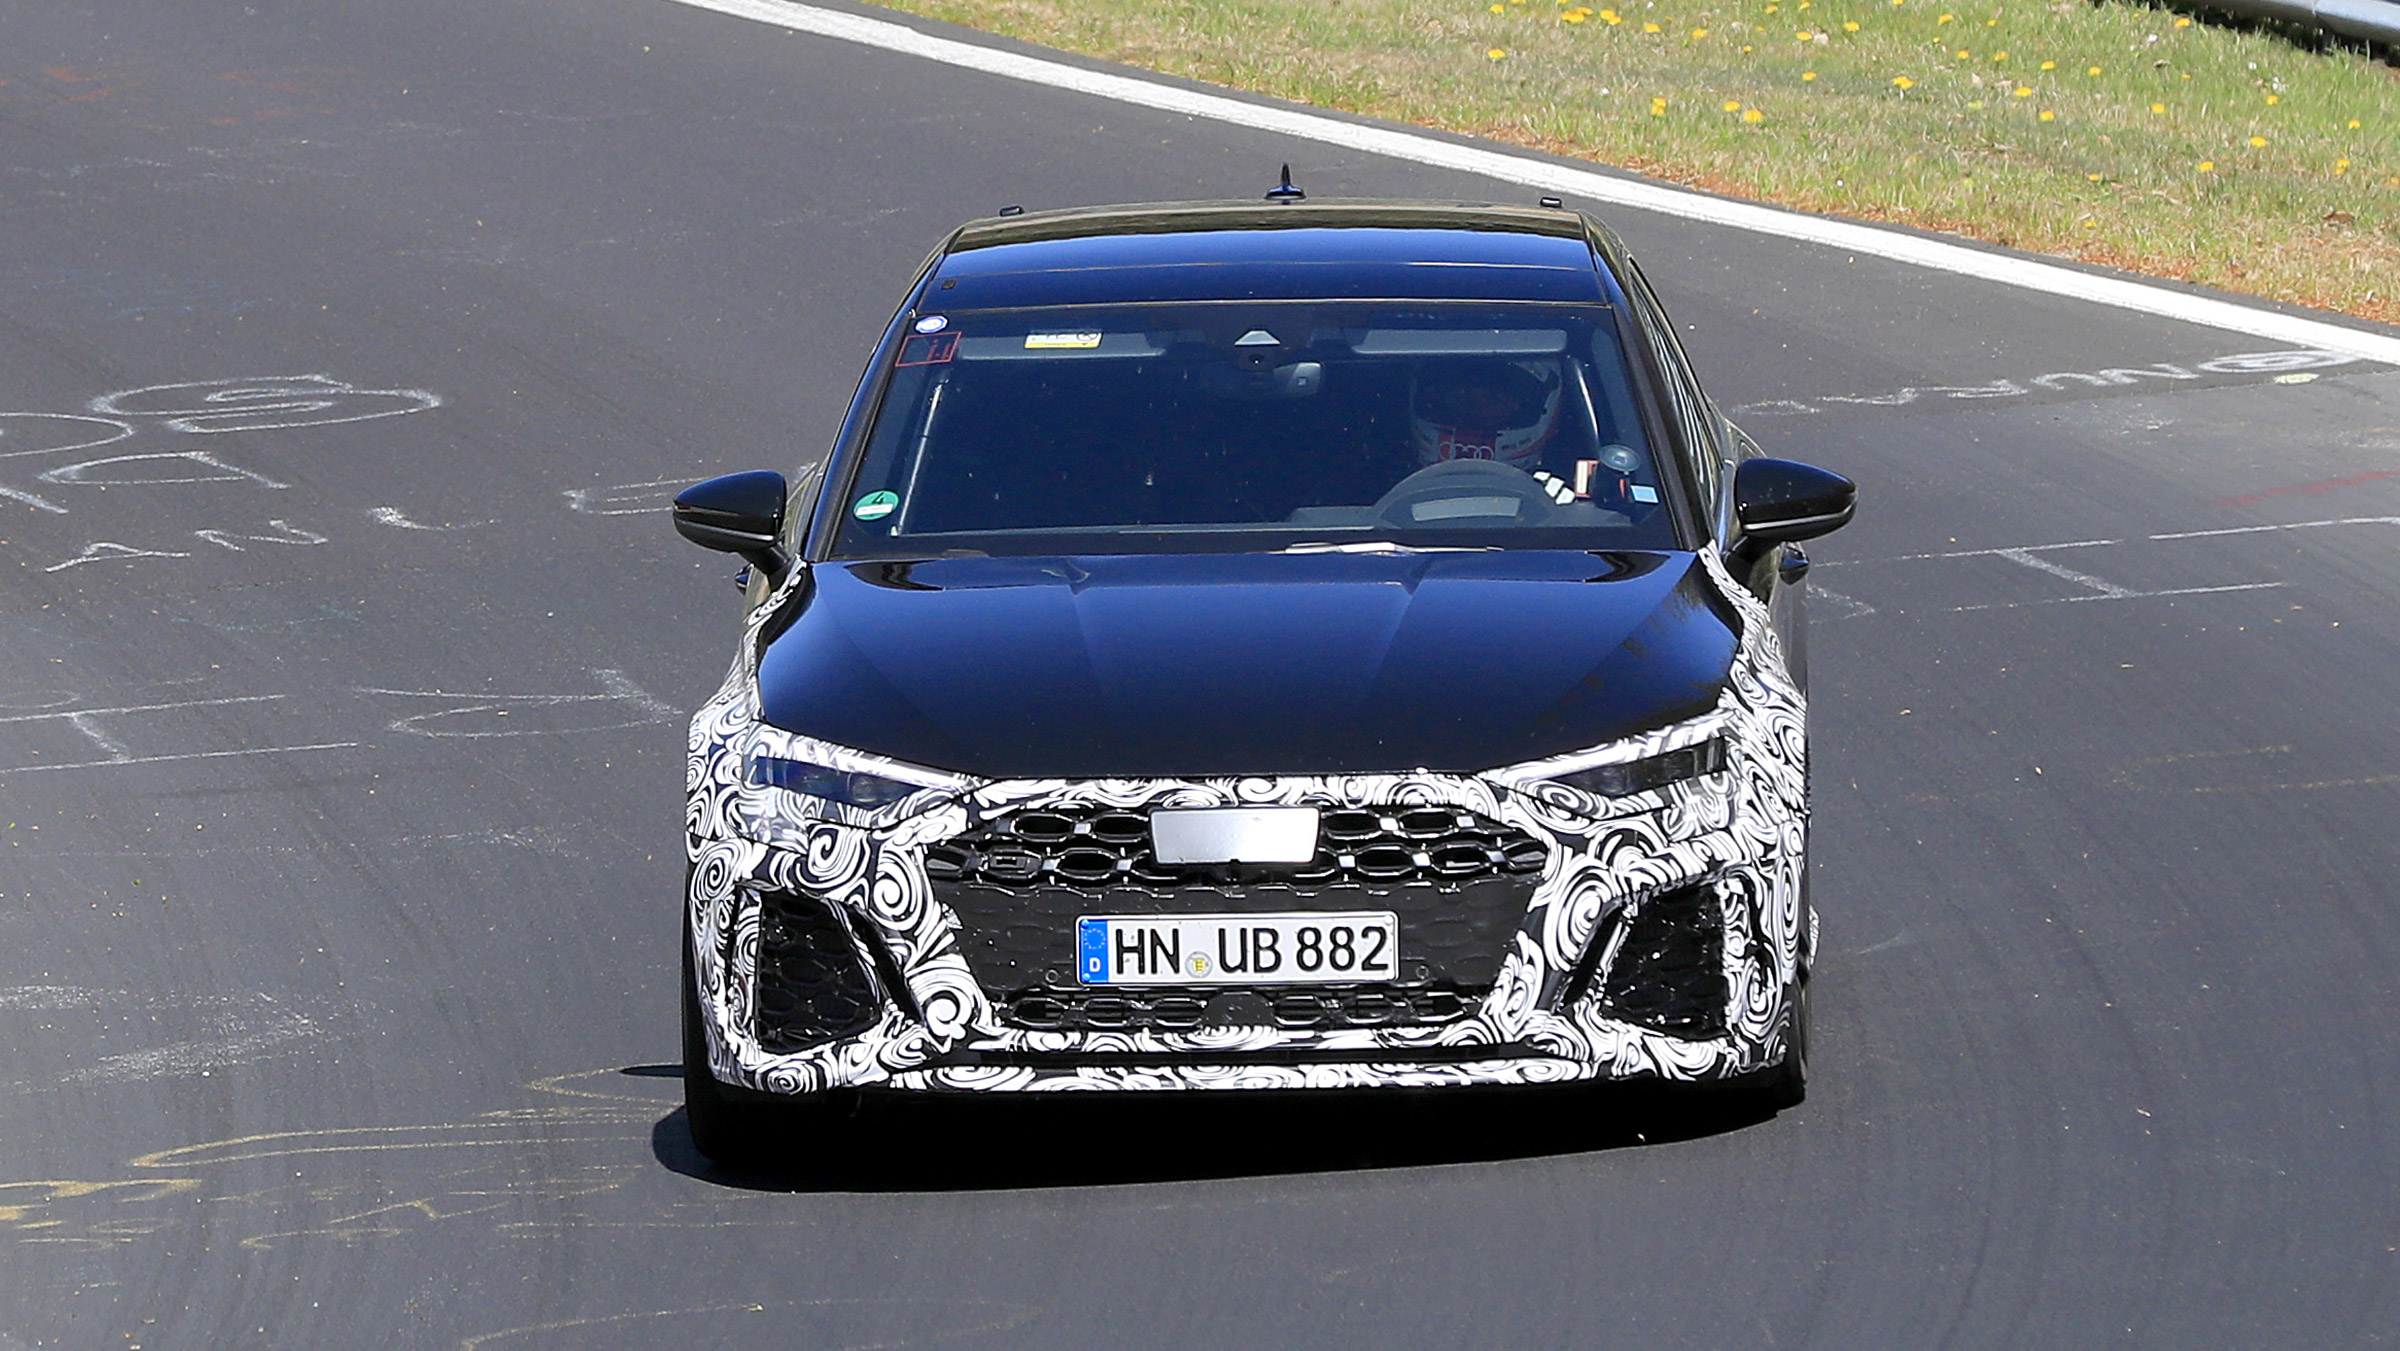 New Audi RS3 spied again – to go head-to-head with the AMG A45 S